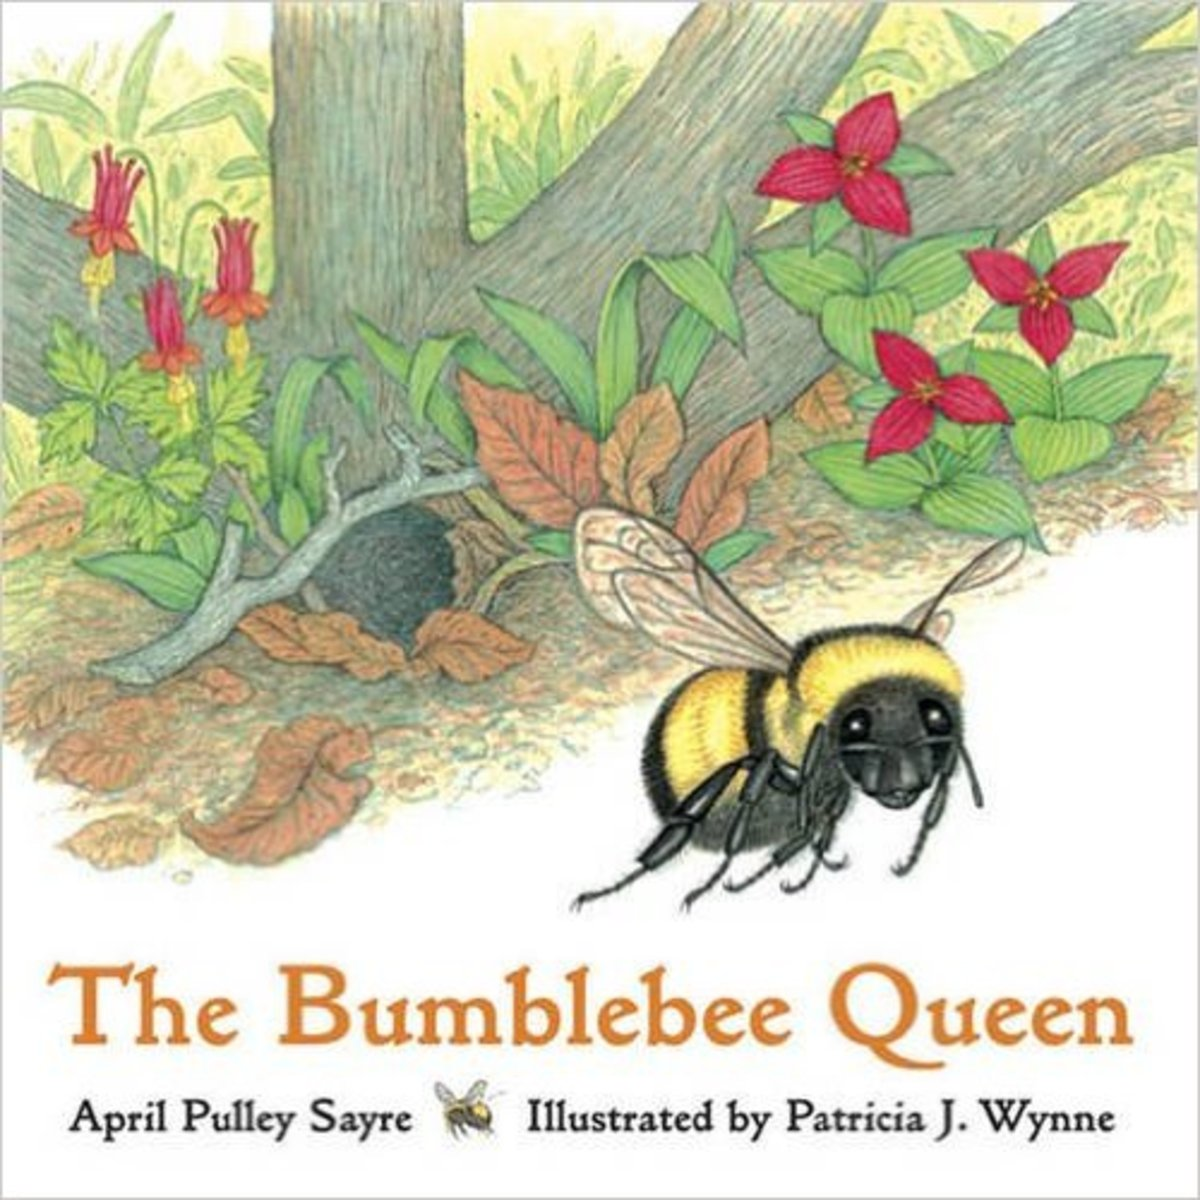 The Bumblebee Queen by April Pulley Sayre - All images are from amazon.com.